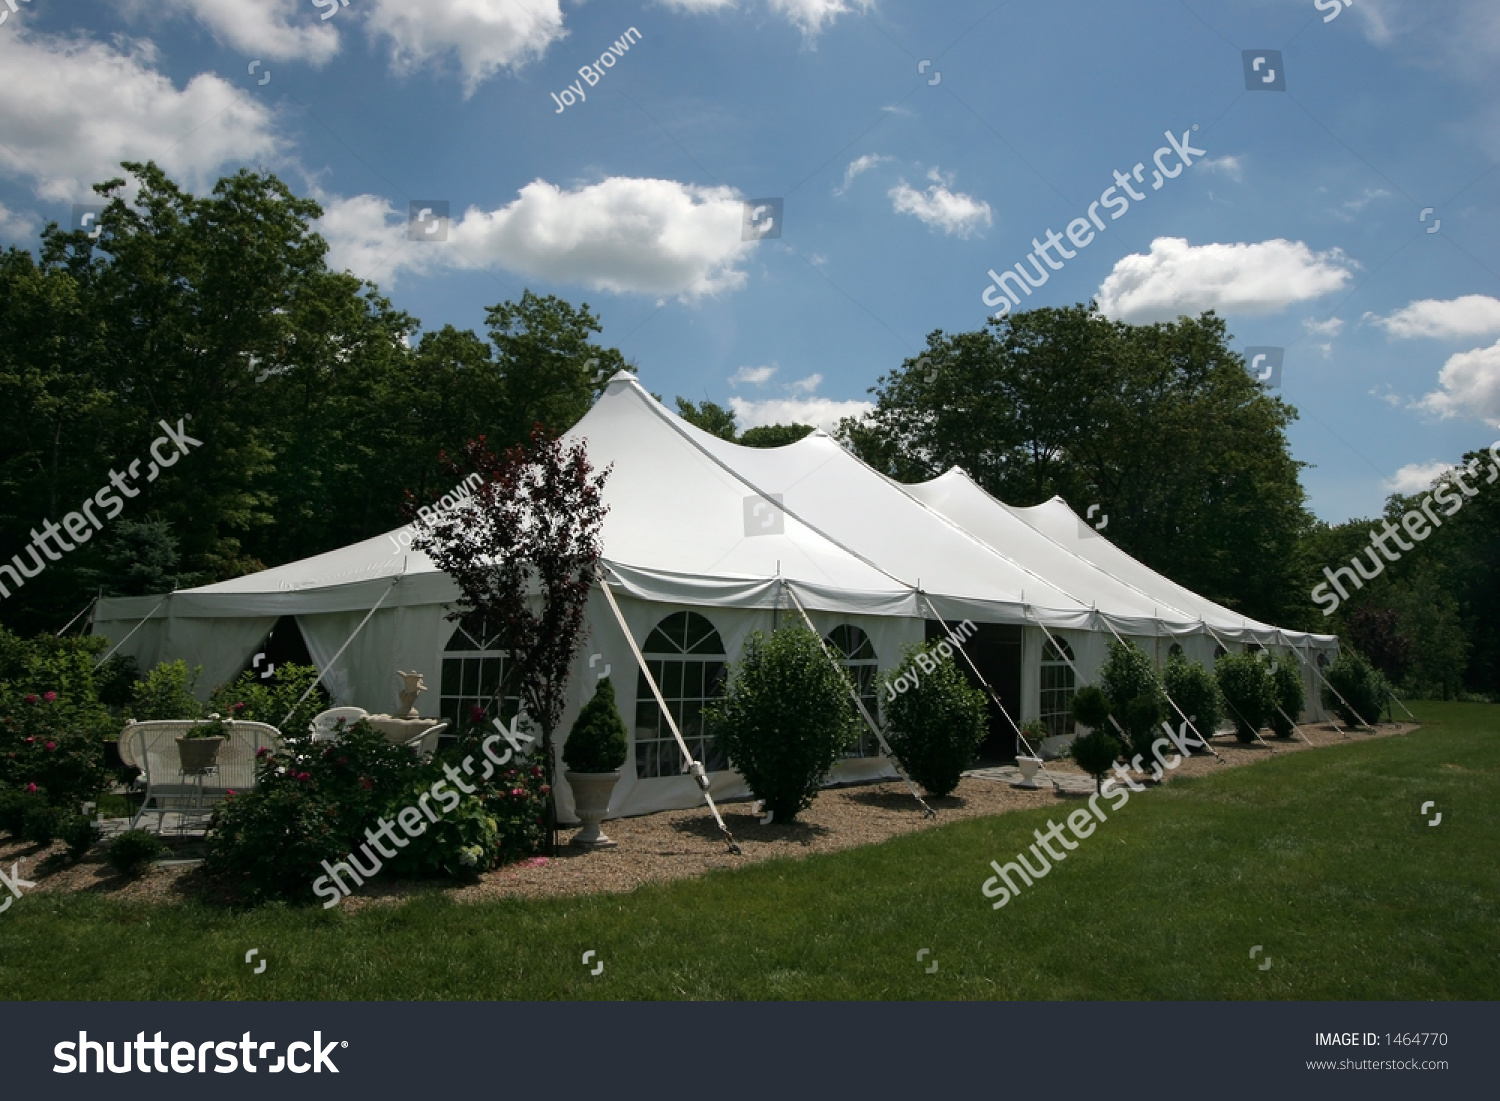 large white tent for events & Large White Tent Events Stock Photo 1464770 - Shutterstock